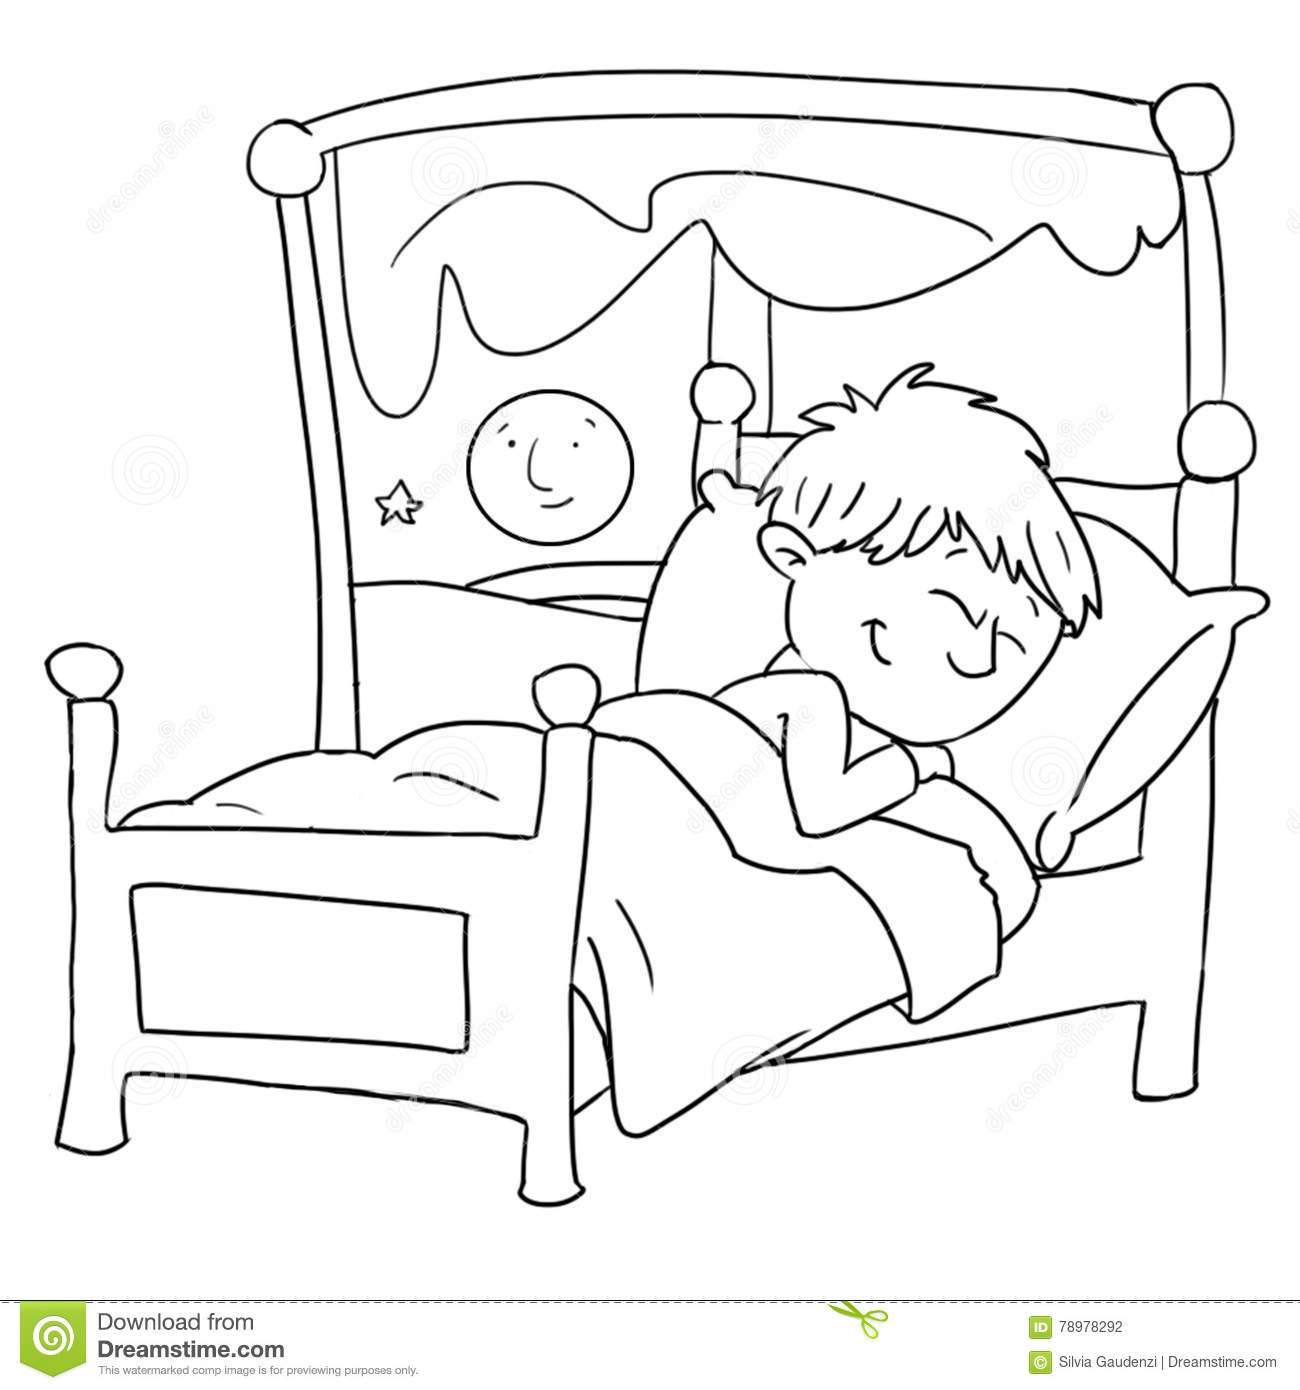 Sleeping child clipart black and white 1 » Clipart Portal.